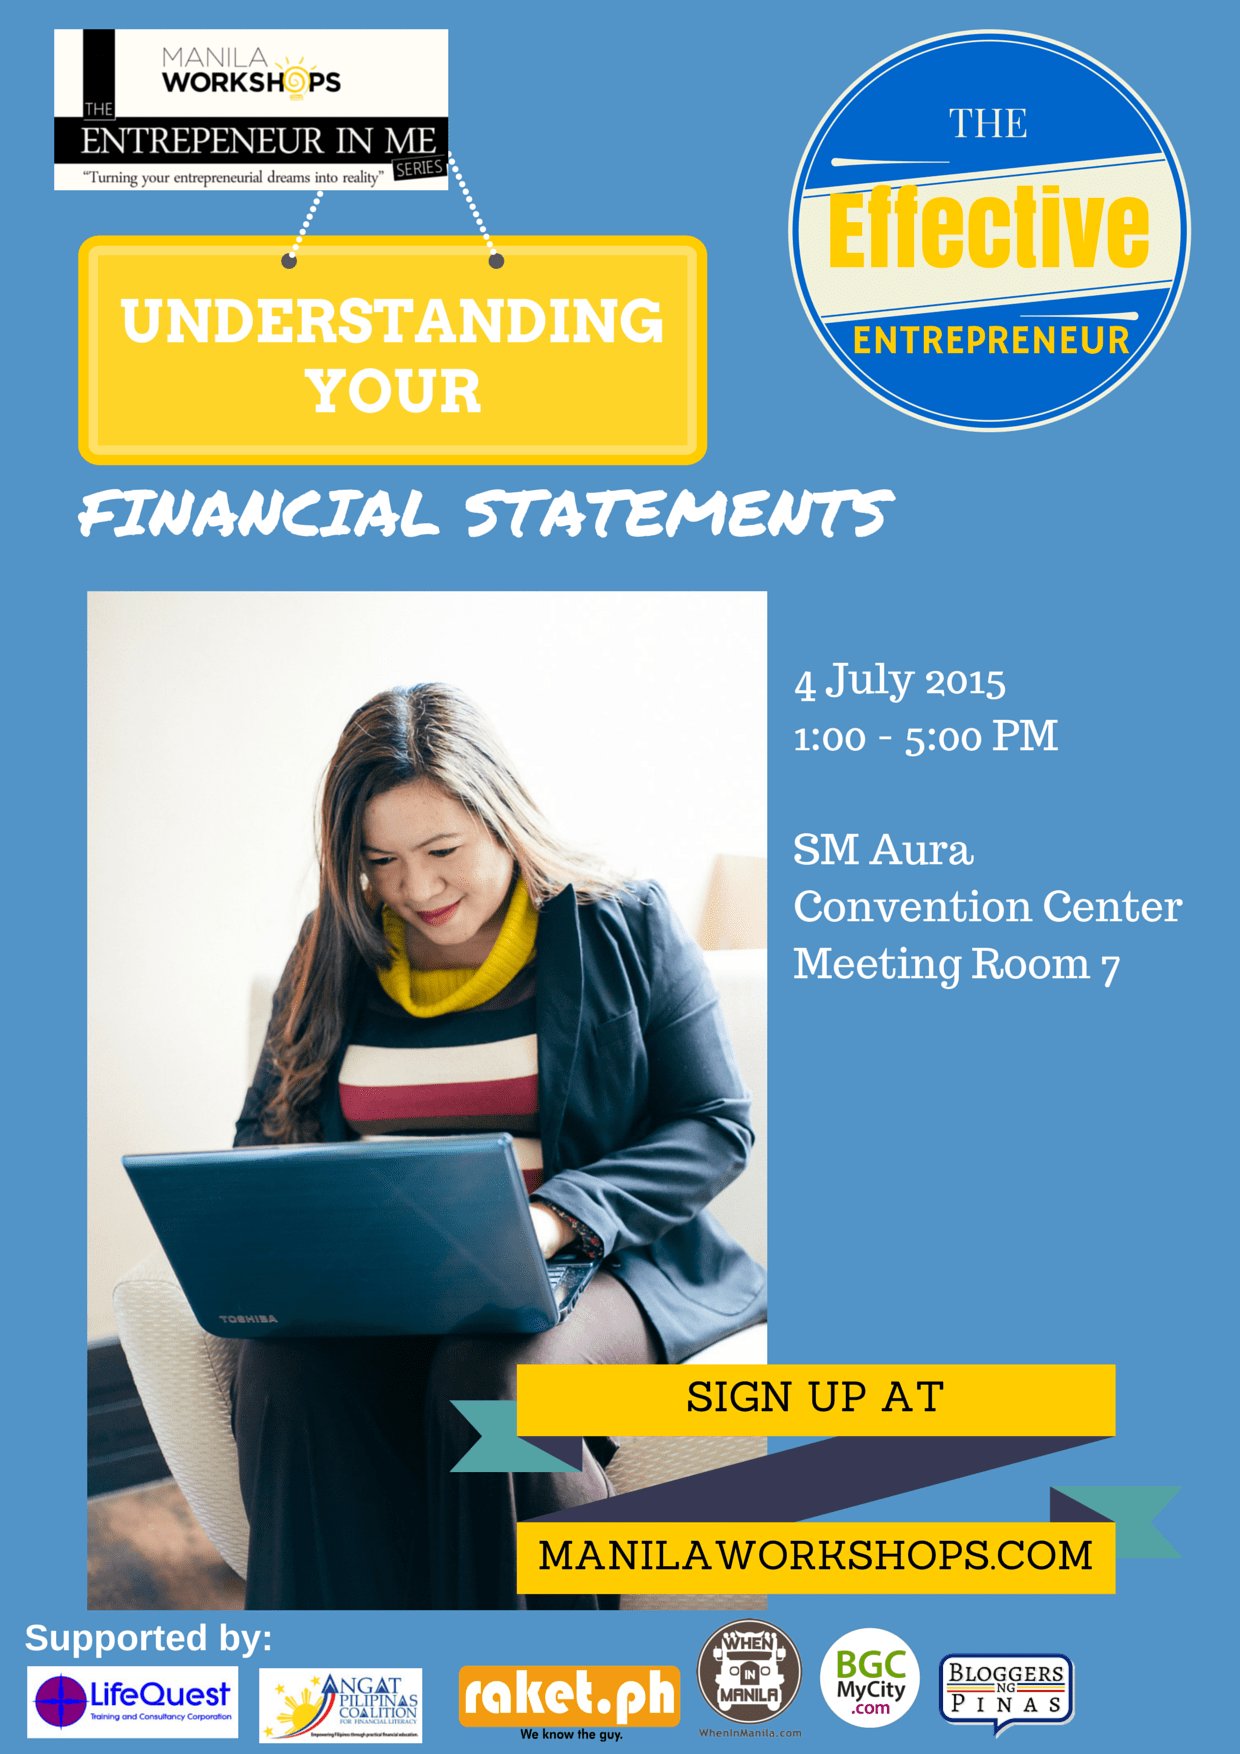 fin understanding Making sense of my financials  however, financial statements are useful tools that clearly show the financial health of your business improving your understanding of them can offer valuable insights into how to better manage and grow your small business.